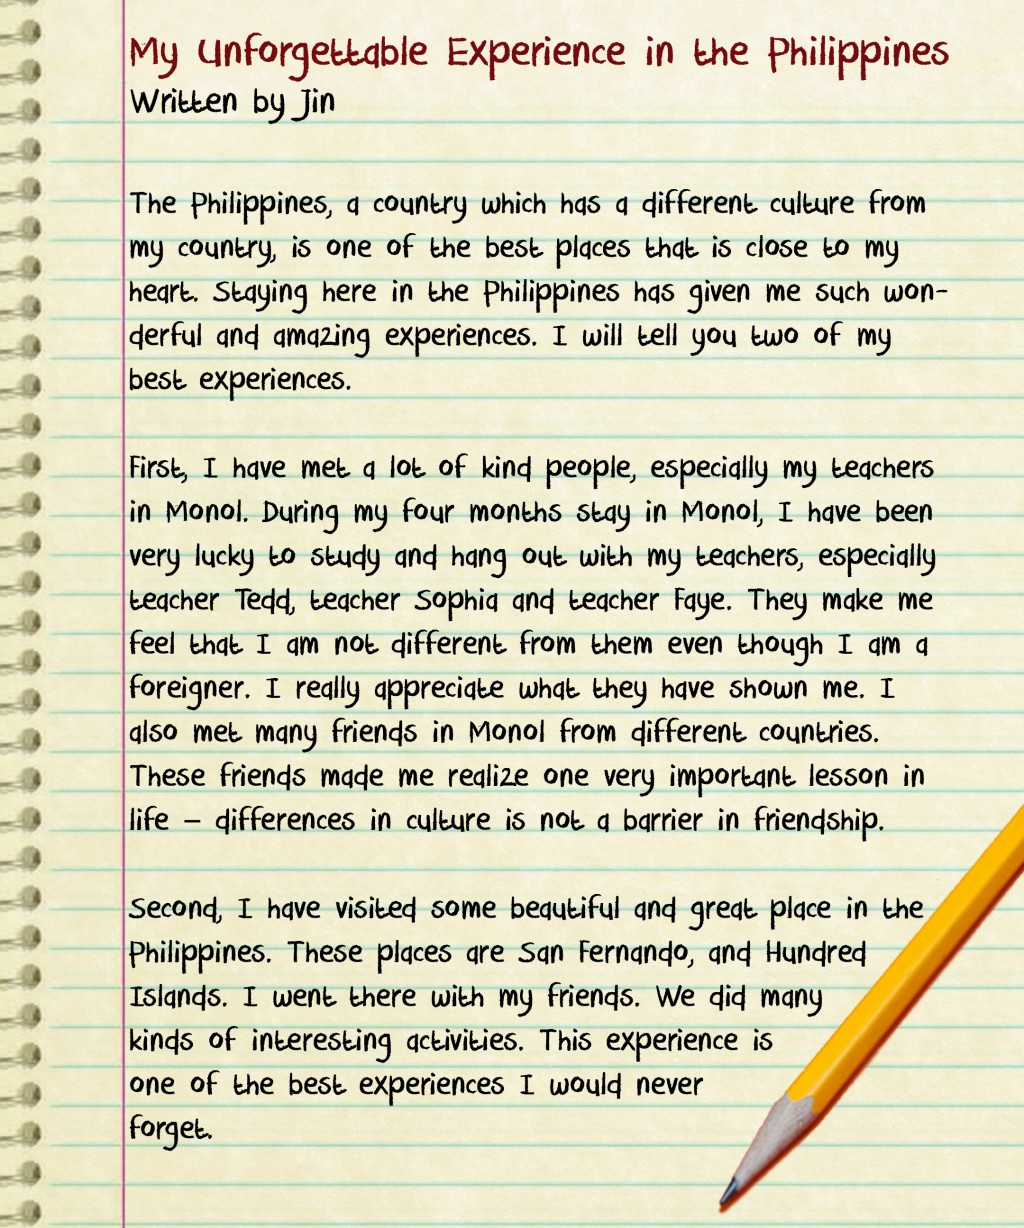 004 Essay Example About Experience In Life Best Bad Memorable Large